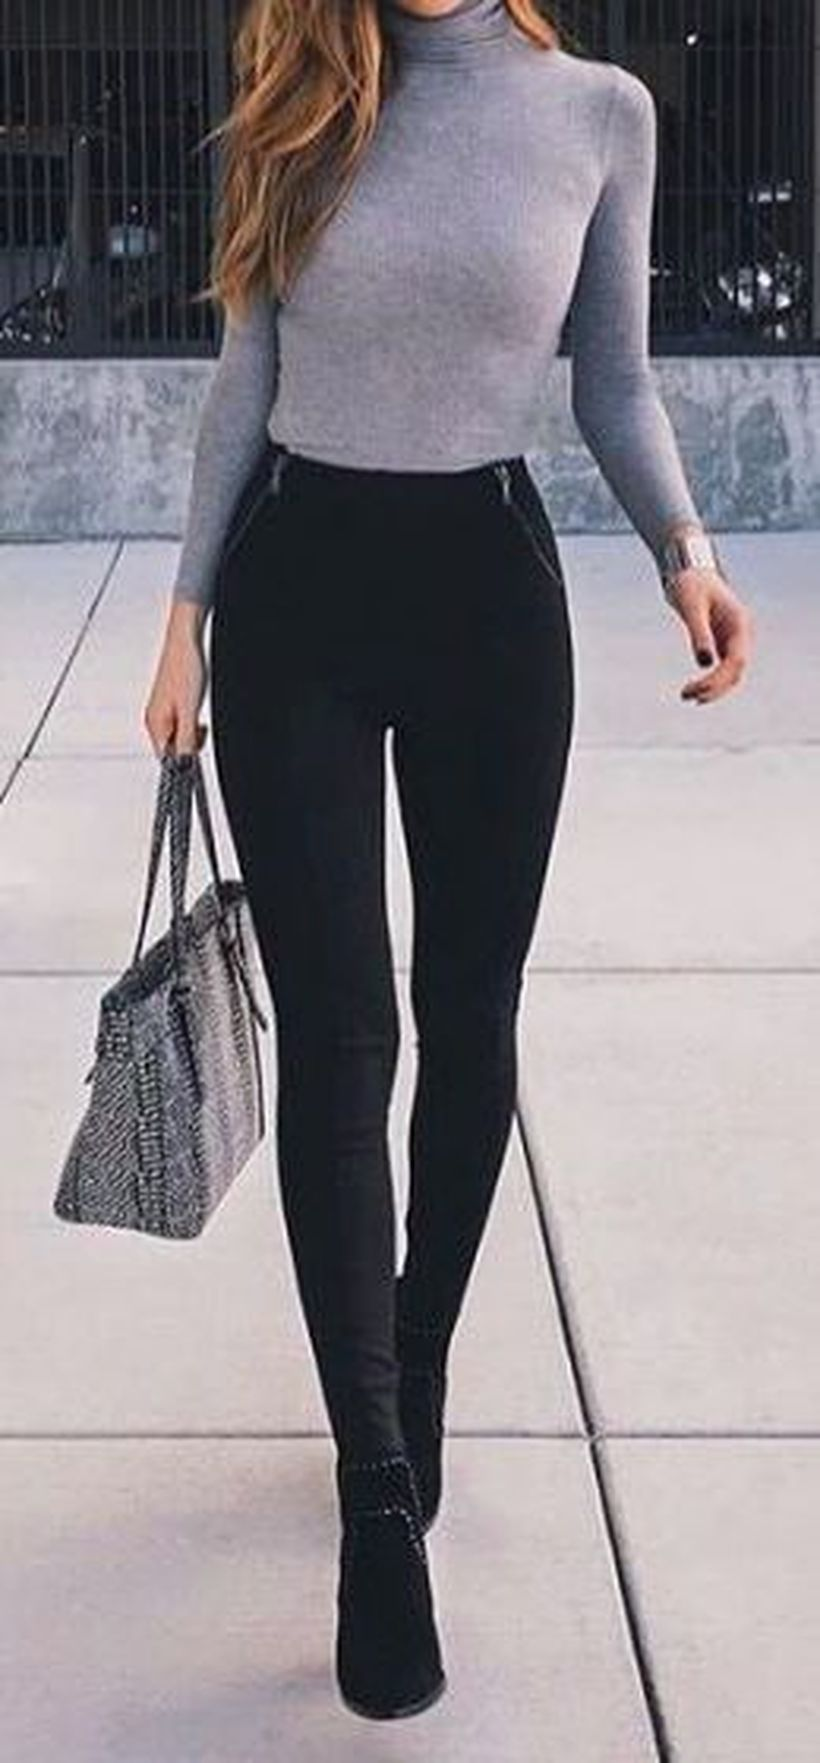 2017 fall fashions trend inspirations for work 48